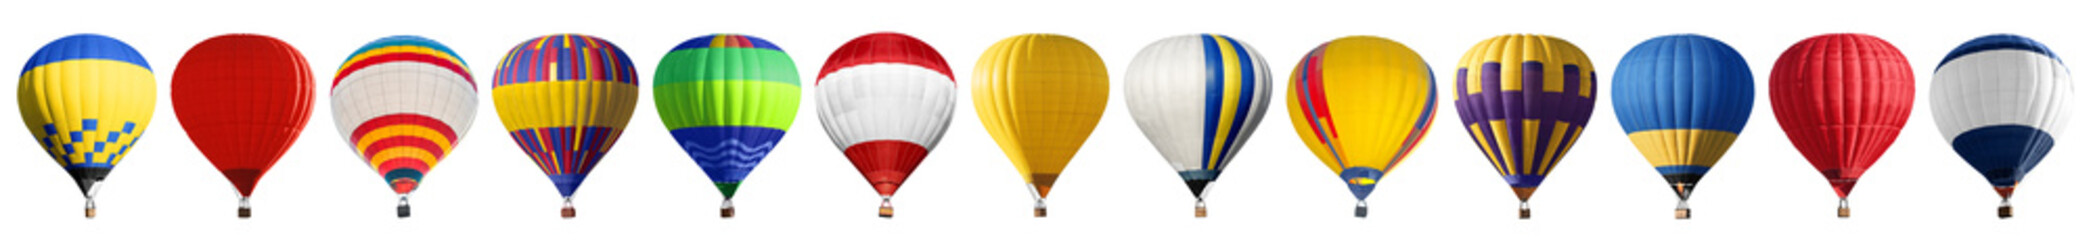 Canvas Prints Balloon Set of bright colorful hot air balloons on white background